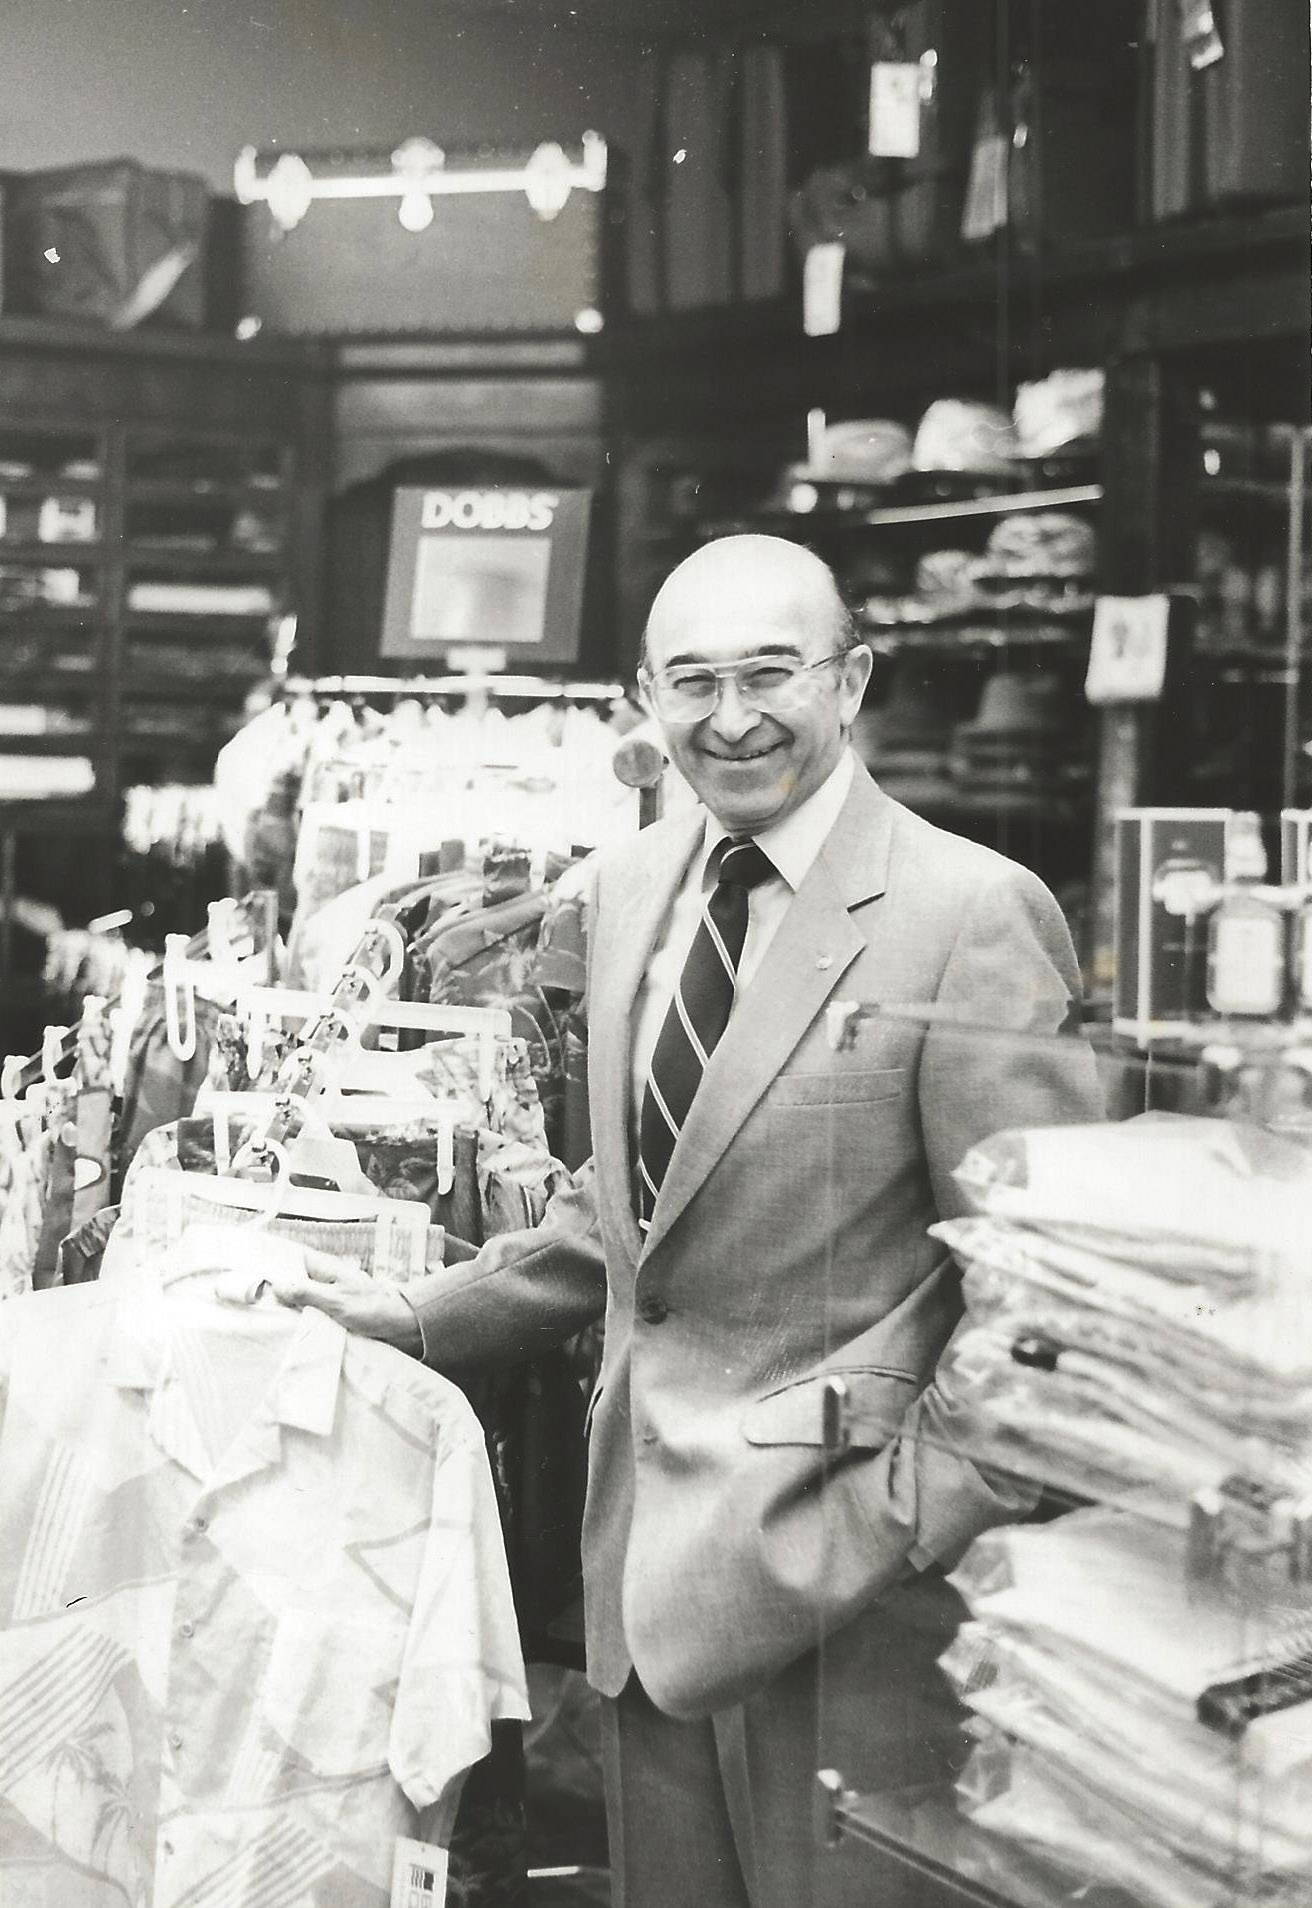 Harold Lipofsky took over Lipofsky's Department Store in Barrington when he returned from service in World War II.